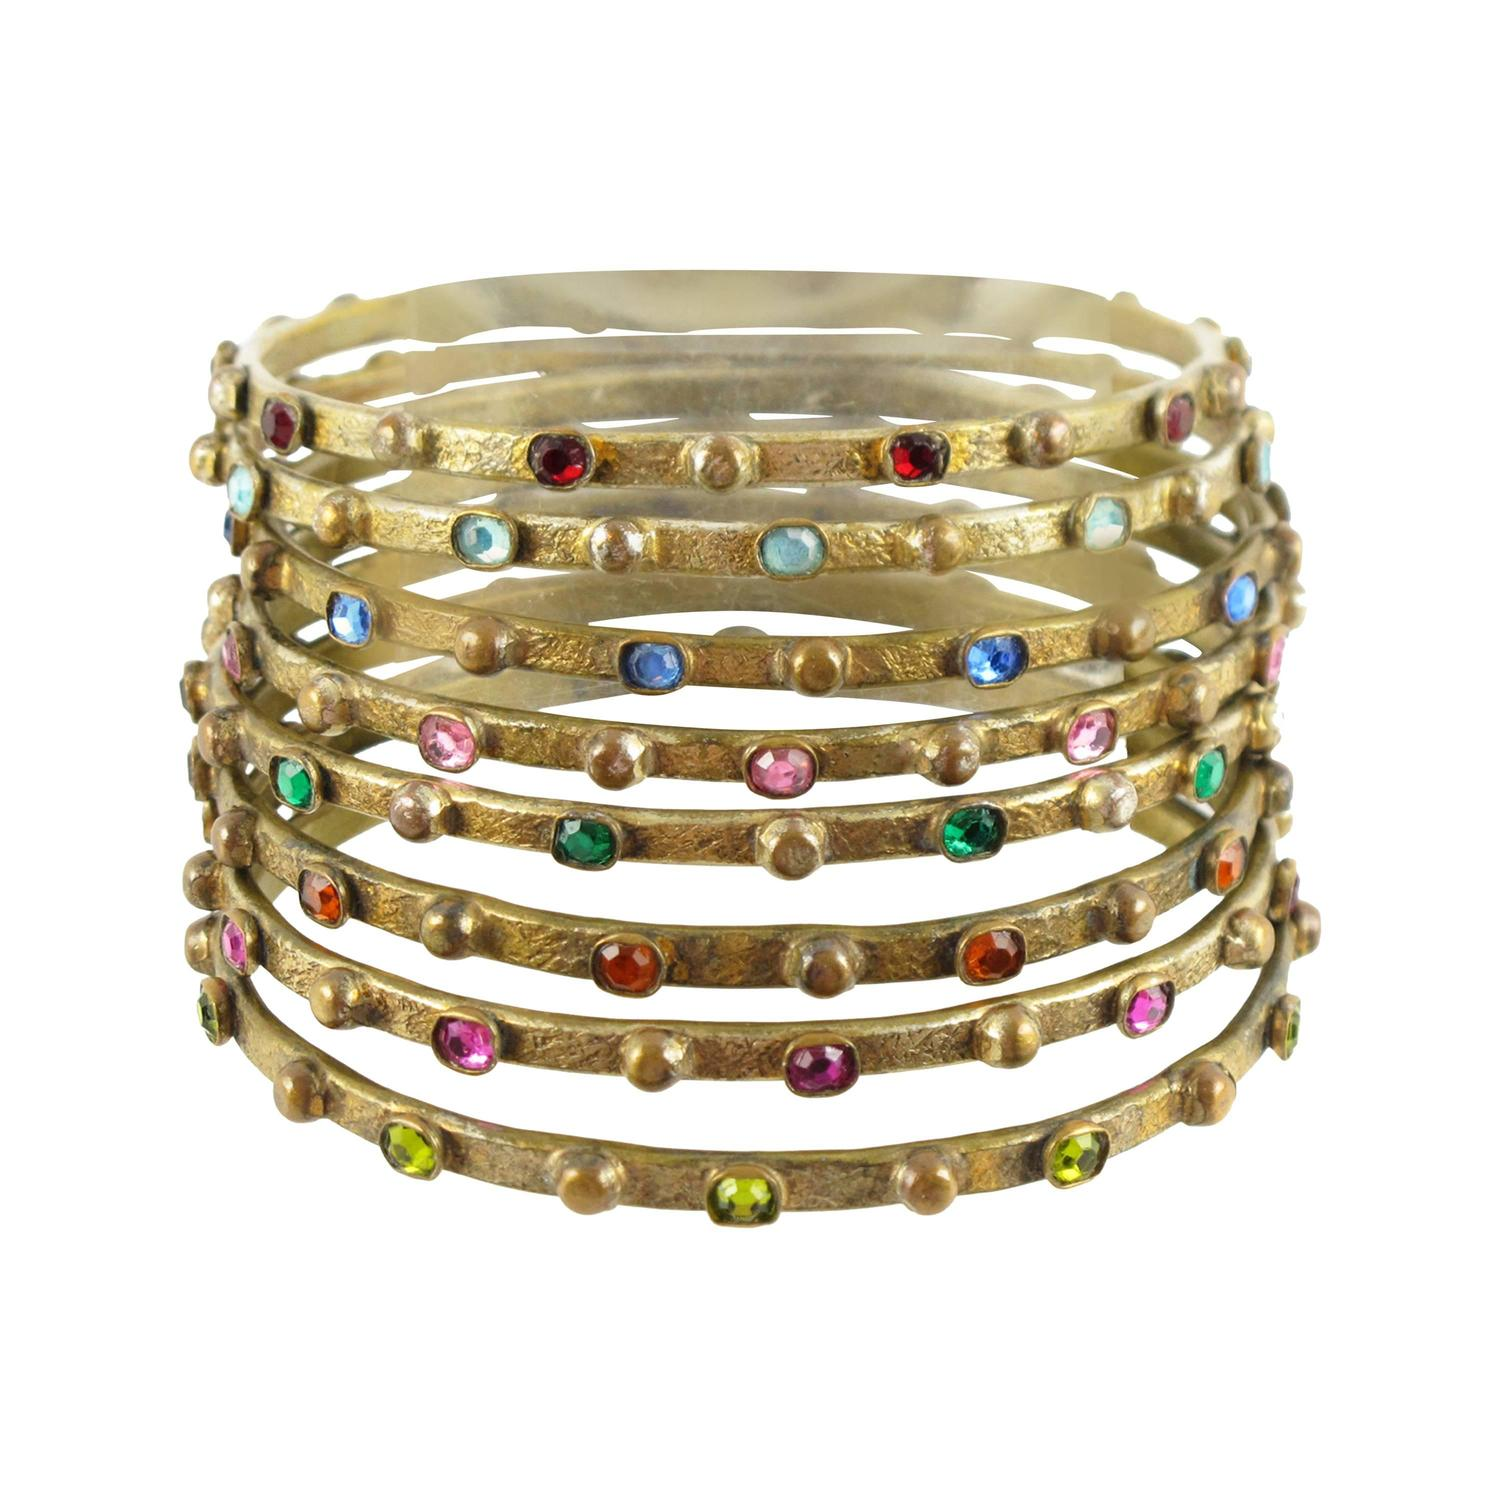 craftsvilla pieces online bangles shop buy golden metal